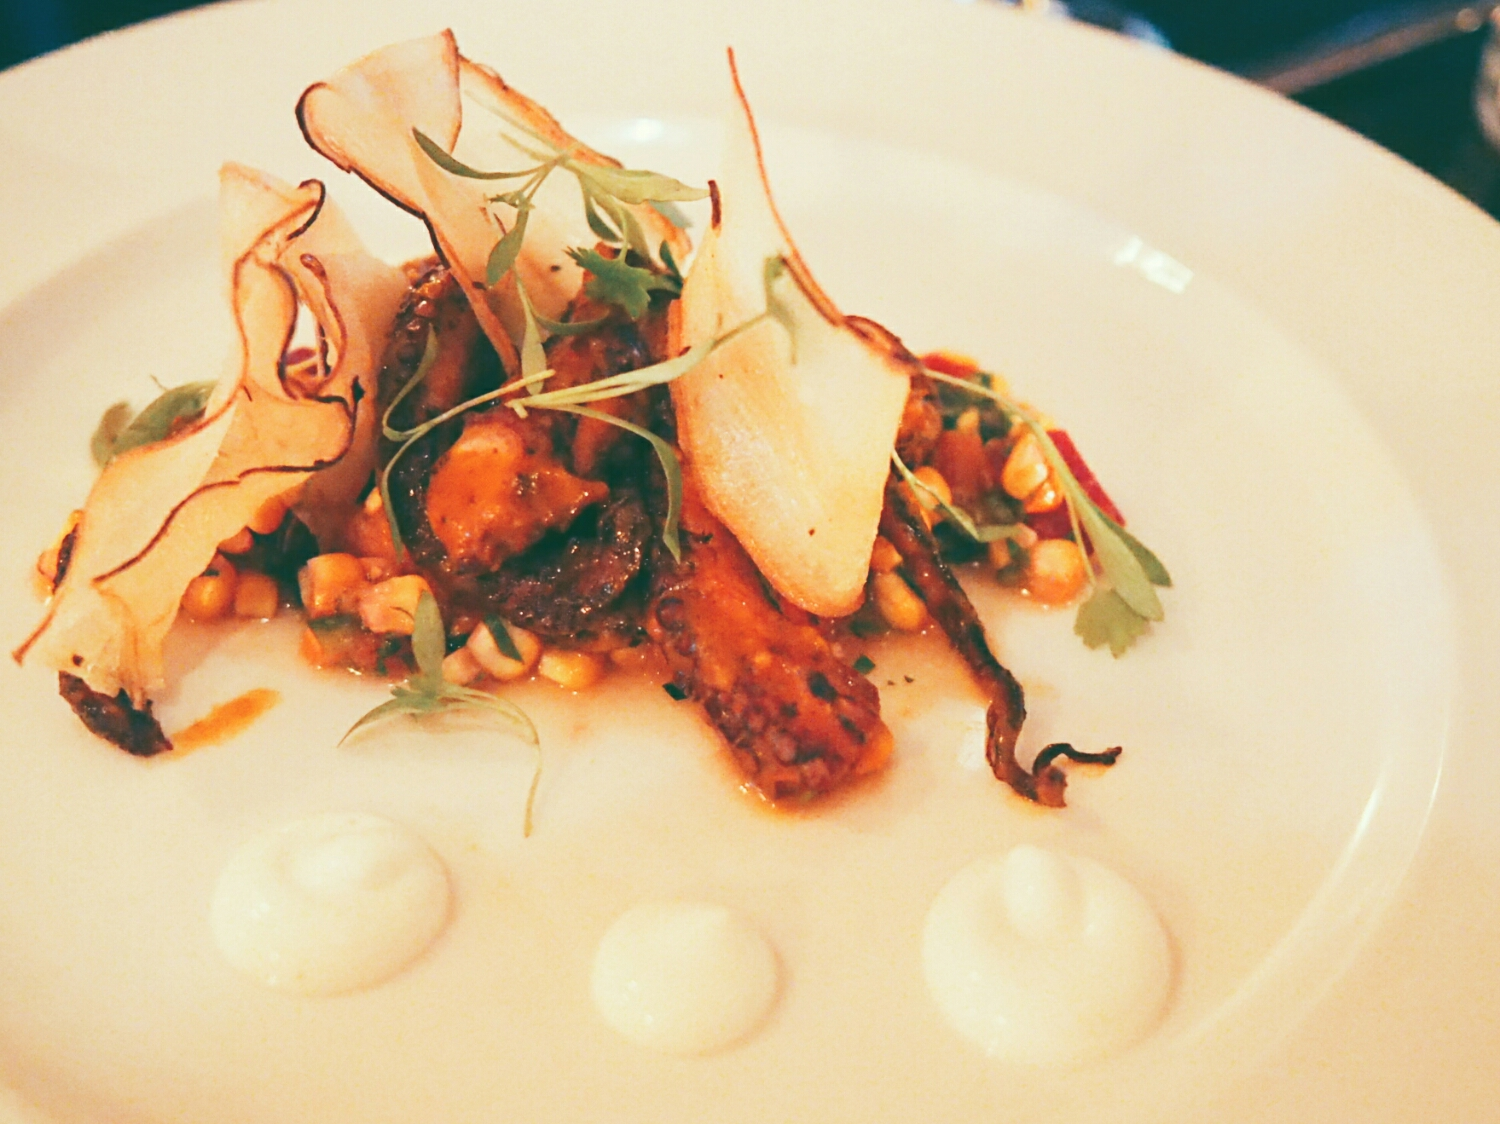 crispy barbecued octopus  with peach and corn salad, serrano chile, cilantro, lemon creme fraice, yucca crisps.